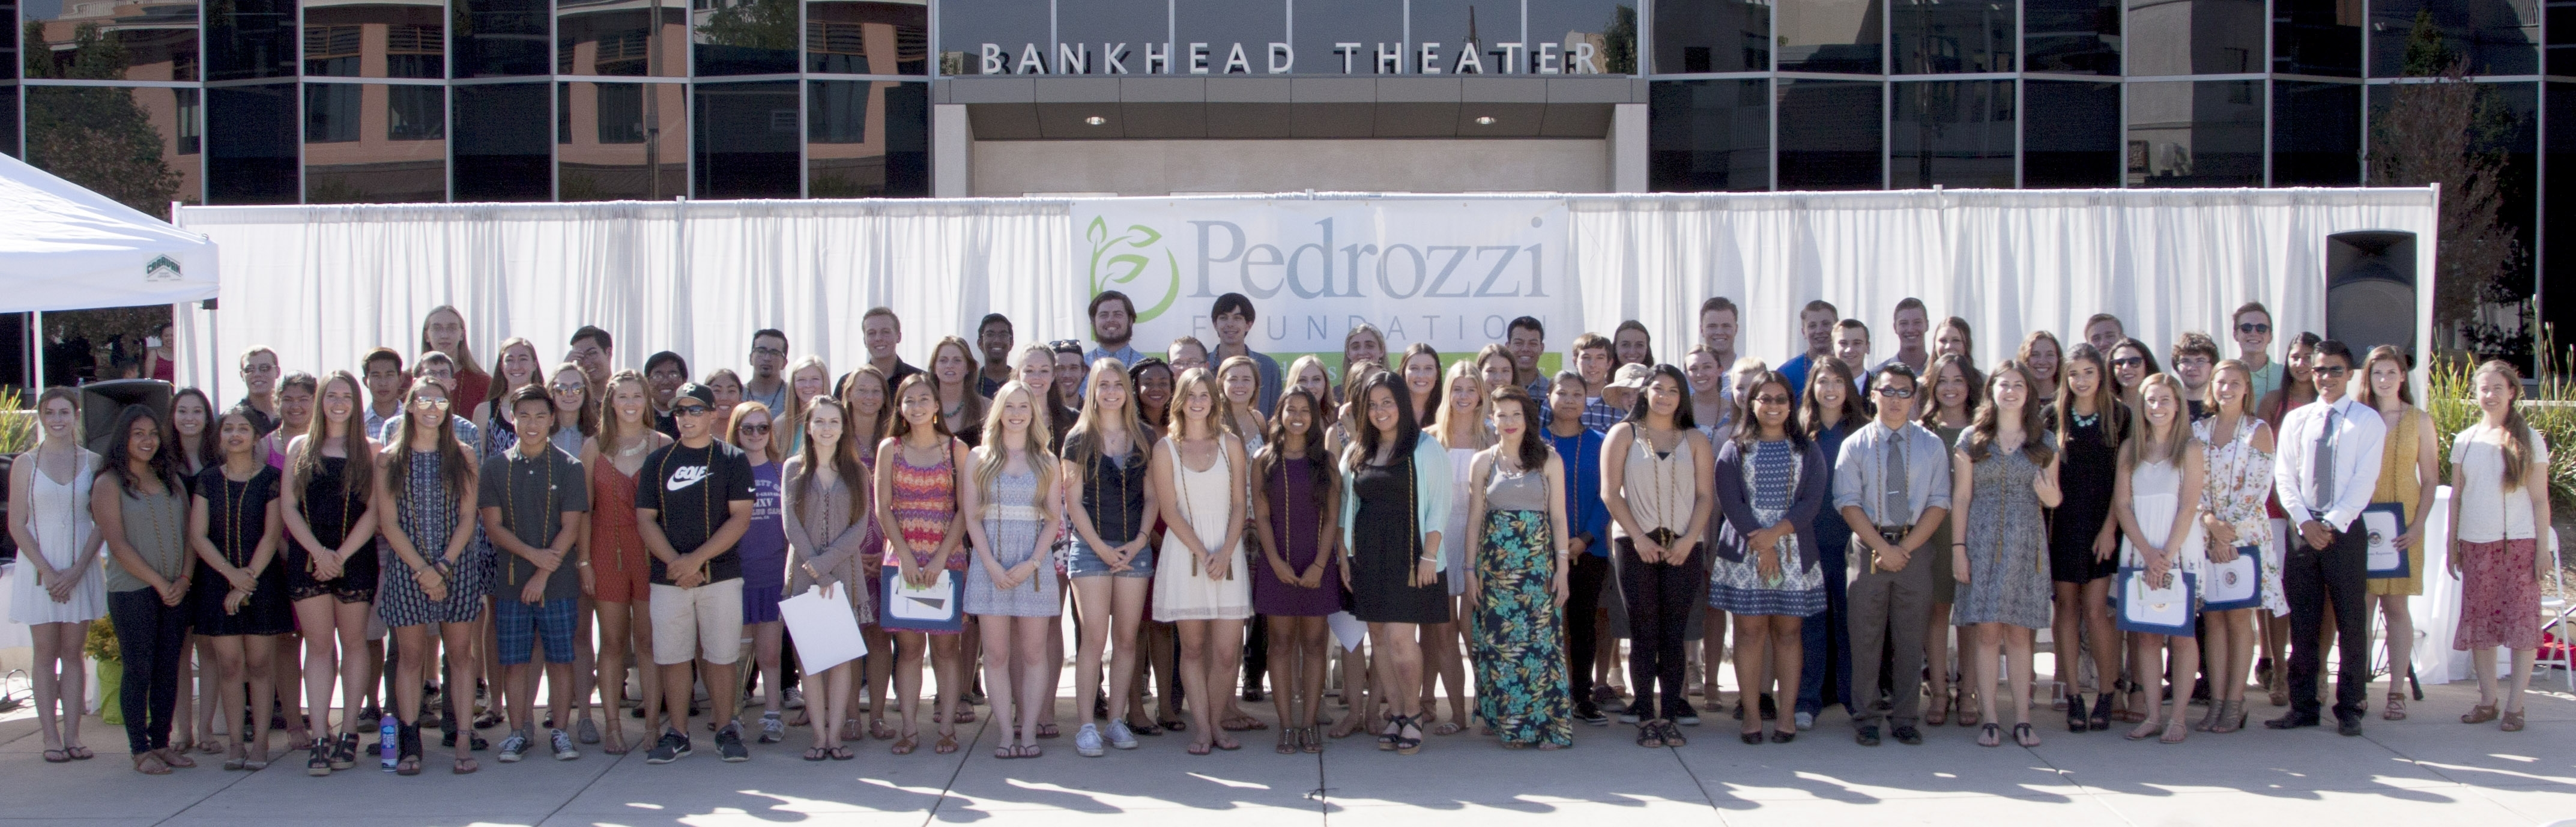 Pedrozzi Scholars 2016 Recognition Event